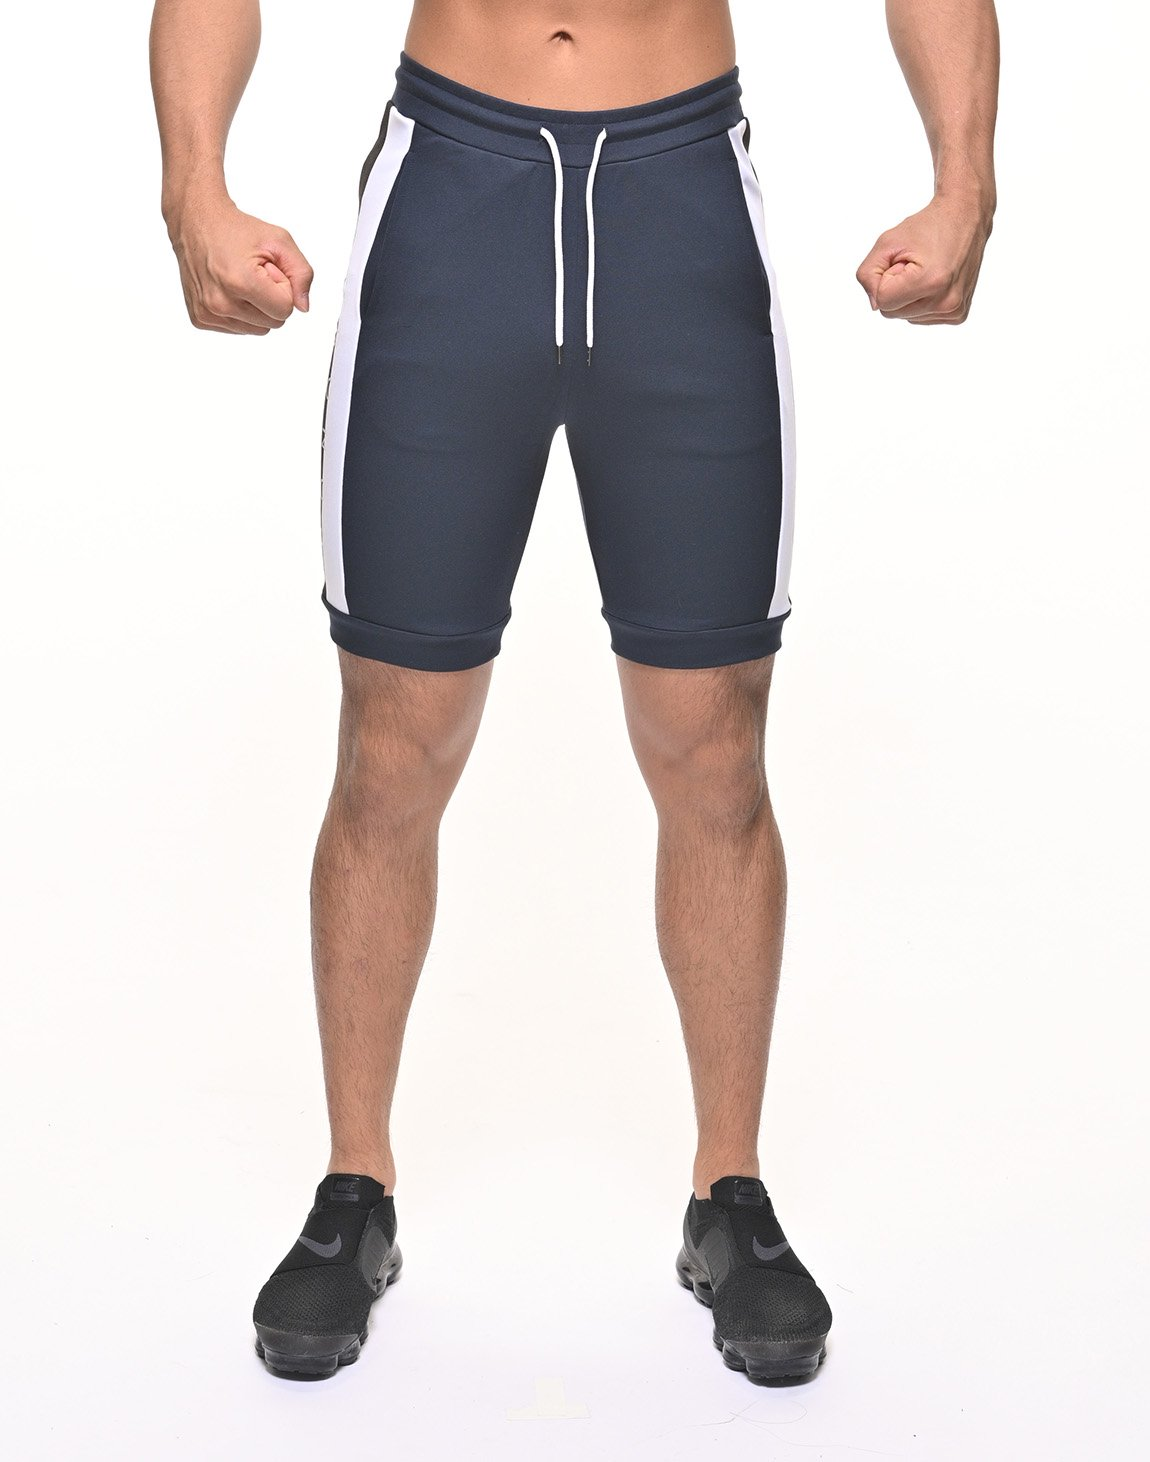 <img class='new_mark_img1' src='https://img.shop-pro.jp/img/new/icons55.gif' style='border:none;display:inline;margin:0px;padding:0px;width:auto;' />CRONOS BORDER COLOR SHORTS【NAVY】